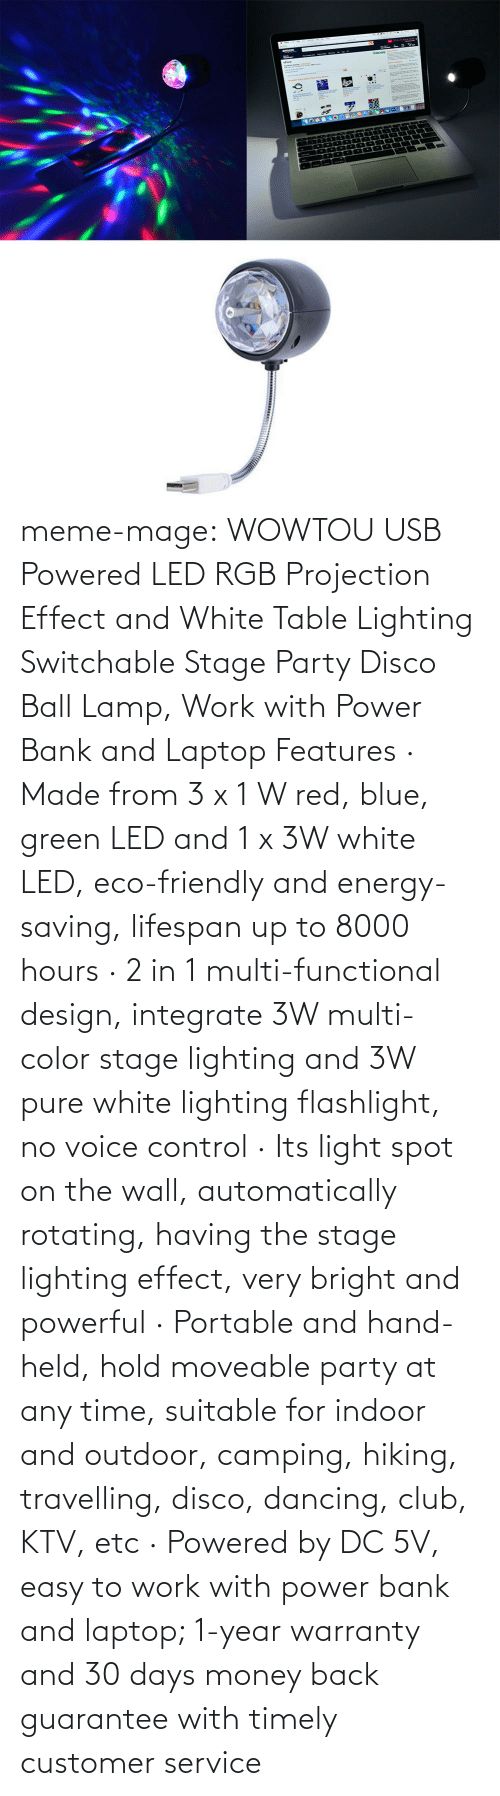 Lifespan: mazDm  one meme-mage:  WOWTOU USB Powered LED RGB Projection Effect and White Table Lighting Switchable Stage Party Disco Ball Lamp, Work with Power Bank and Laptop Features · Made from 3 x 1 W red, blue, green LED and 1 x 3W white LED, eco-friendly and energy-saving, lifespan up to 8000 hours · 2 in 1 multi-functional design, integrate 3W multi-color stage lighting and 3W pure white lighting flashlight, no voice control · Its light spot on the wall, automatically rotating, having the stage lighting effect, very bright and powerful · Portable and hand-held, hold moveable party at any time, suitable for indoor and outdoor, camping, hiking, travelling, disco, dancing, club, KTV, etc · Powered by DC 5V, easy to work with power bank and laptop; 1-year warranty and 30 days money back guarantee with timely customer service